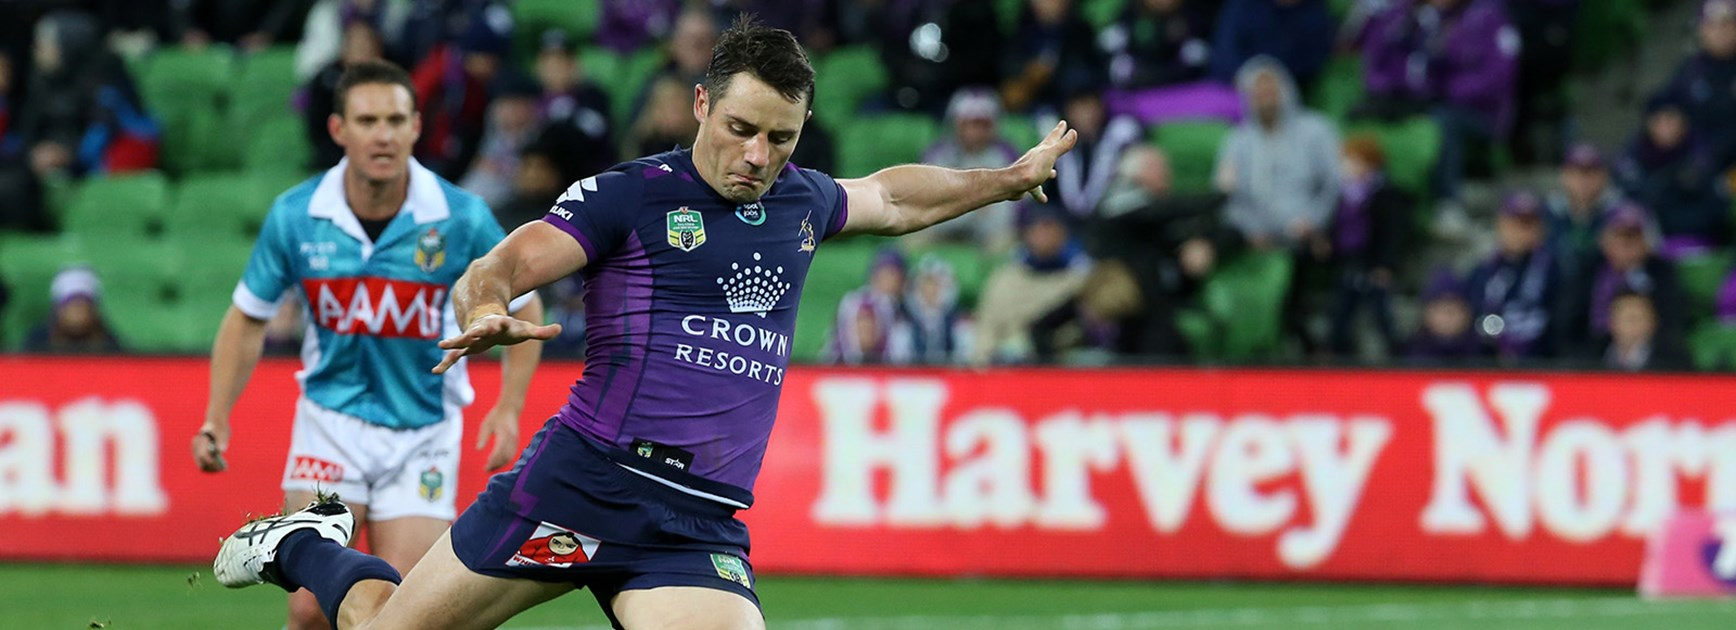 Cooper Cronk joined an elite group of players to reach 200 wins in the NRL.